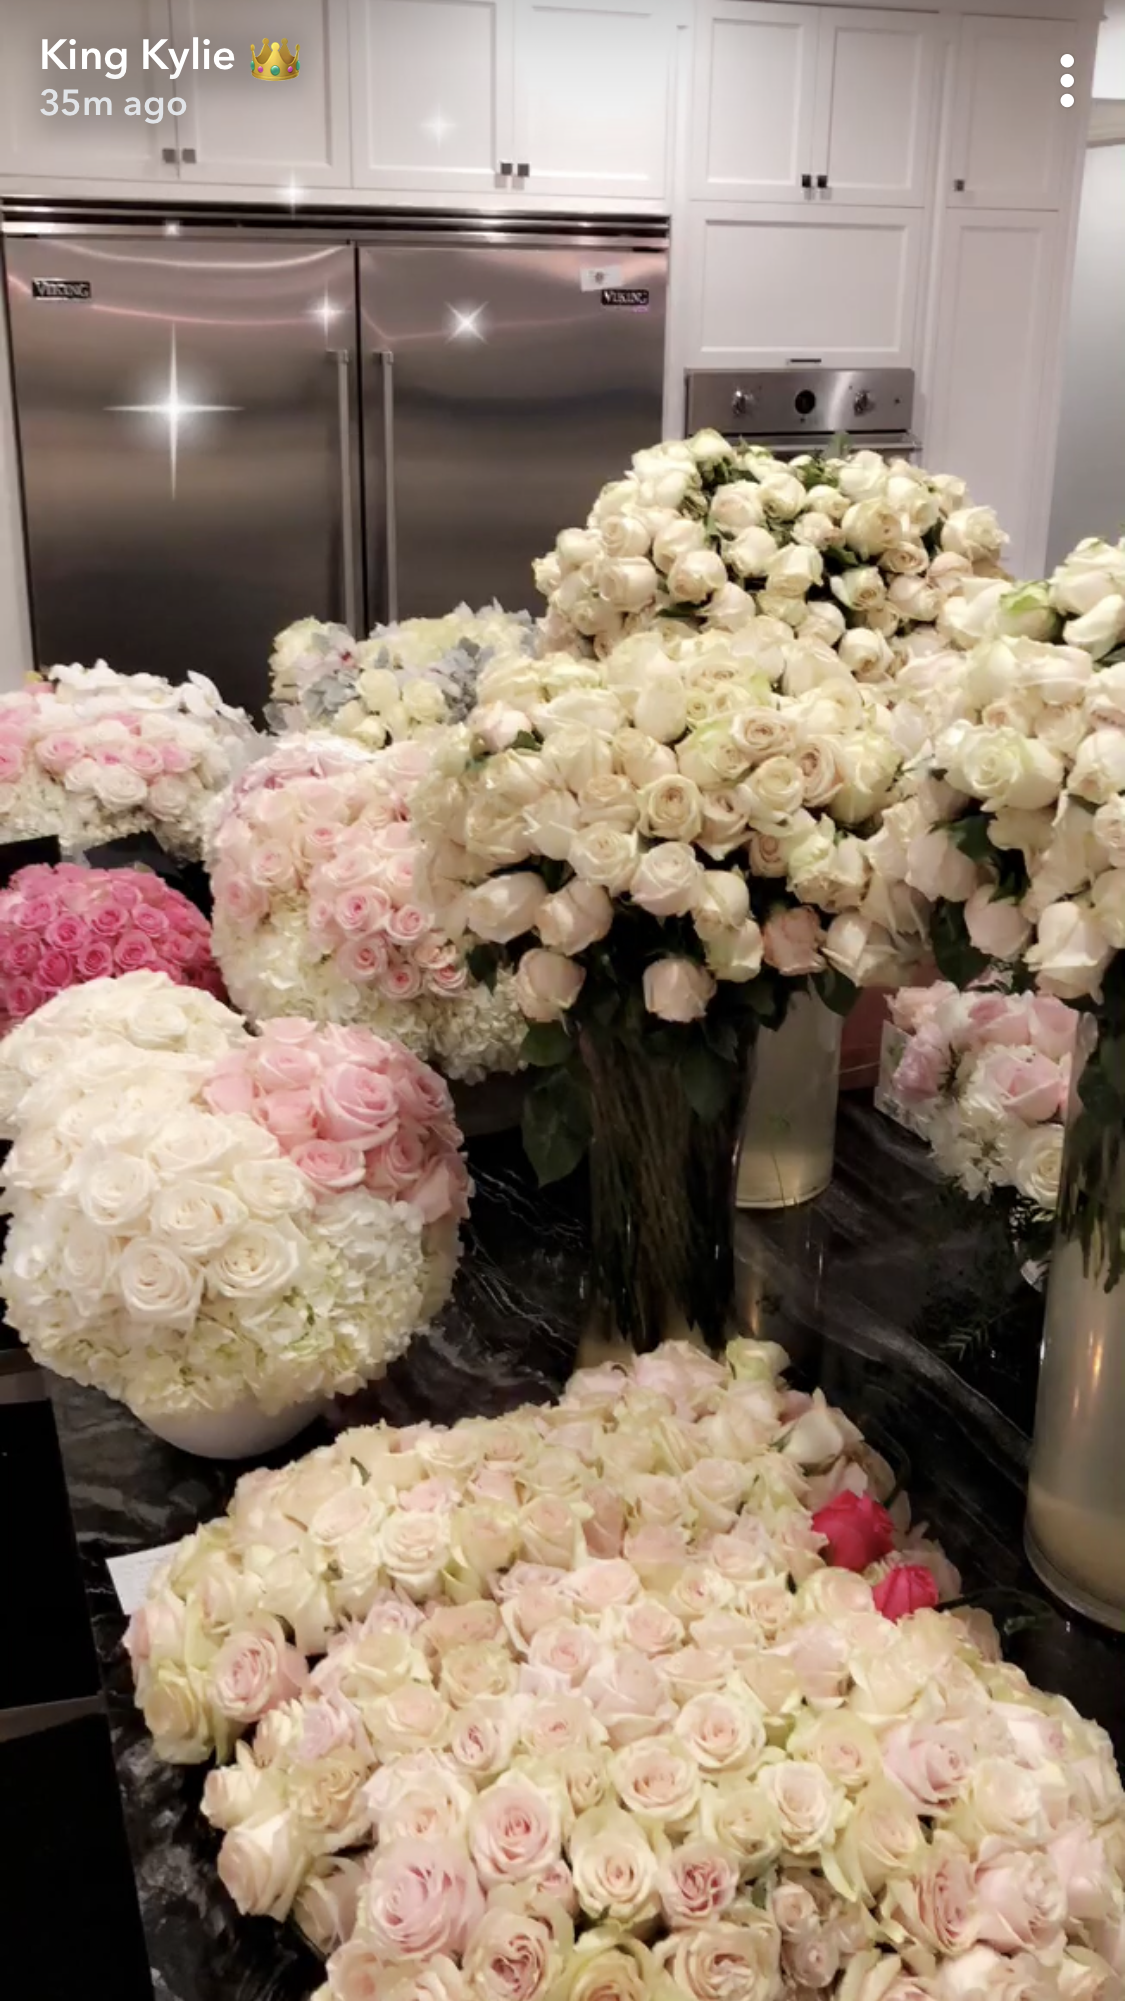 Pin by HW on Flowers Flower arrangements, Kylie jenner